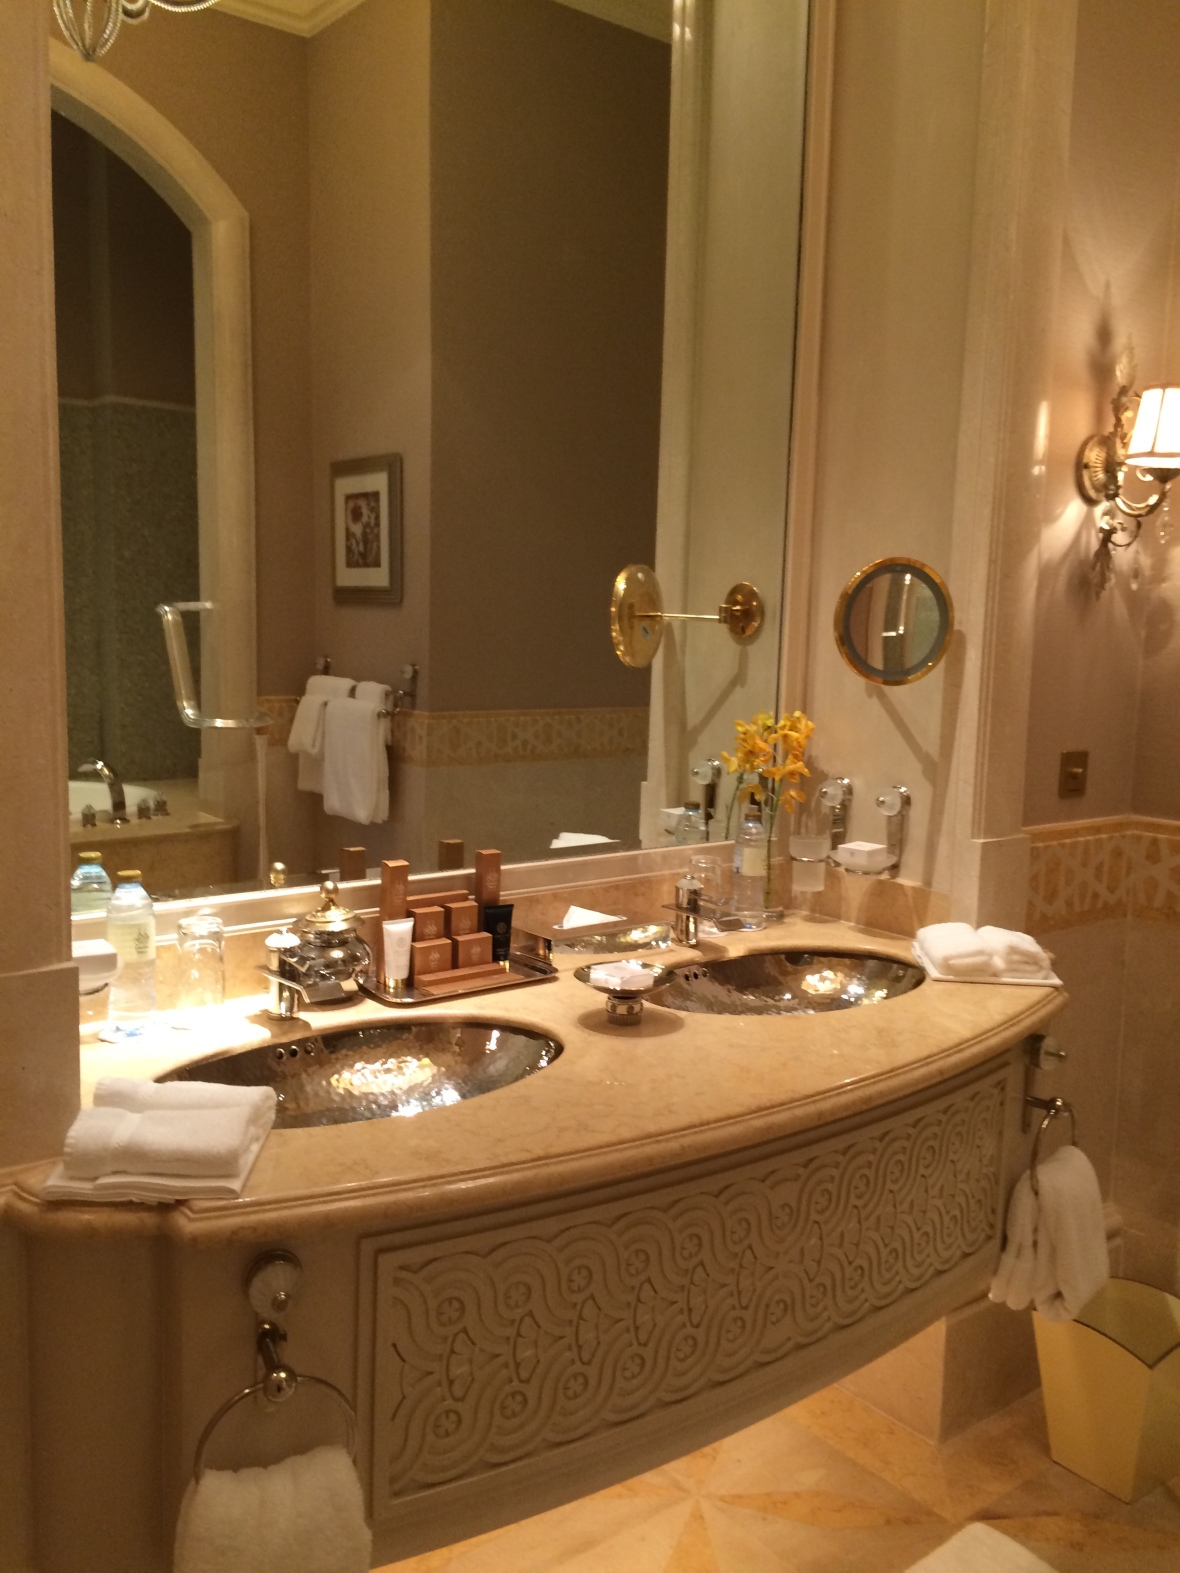 Bathroom Sink, Emirates Palace Hotel, Abu Dhabi, UAE